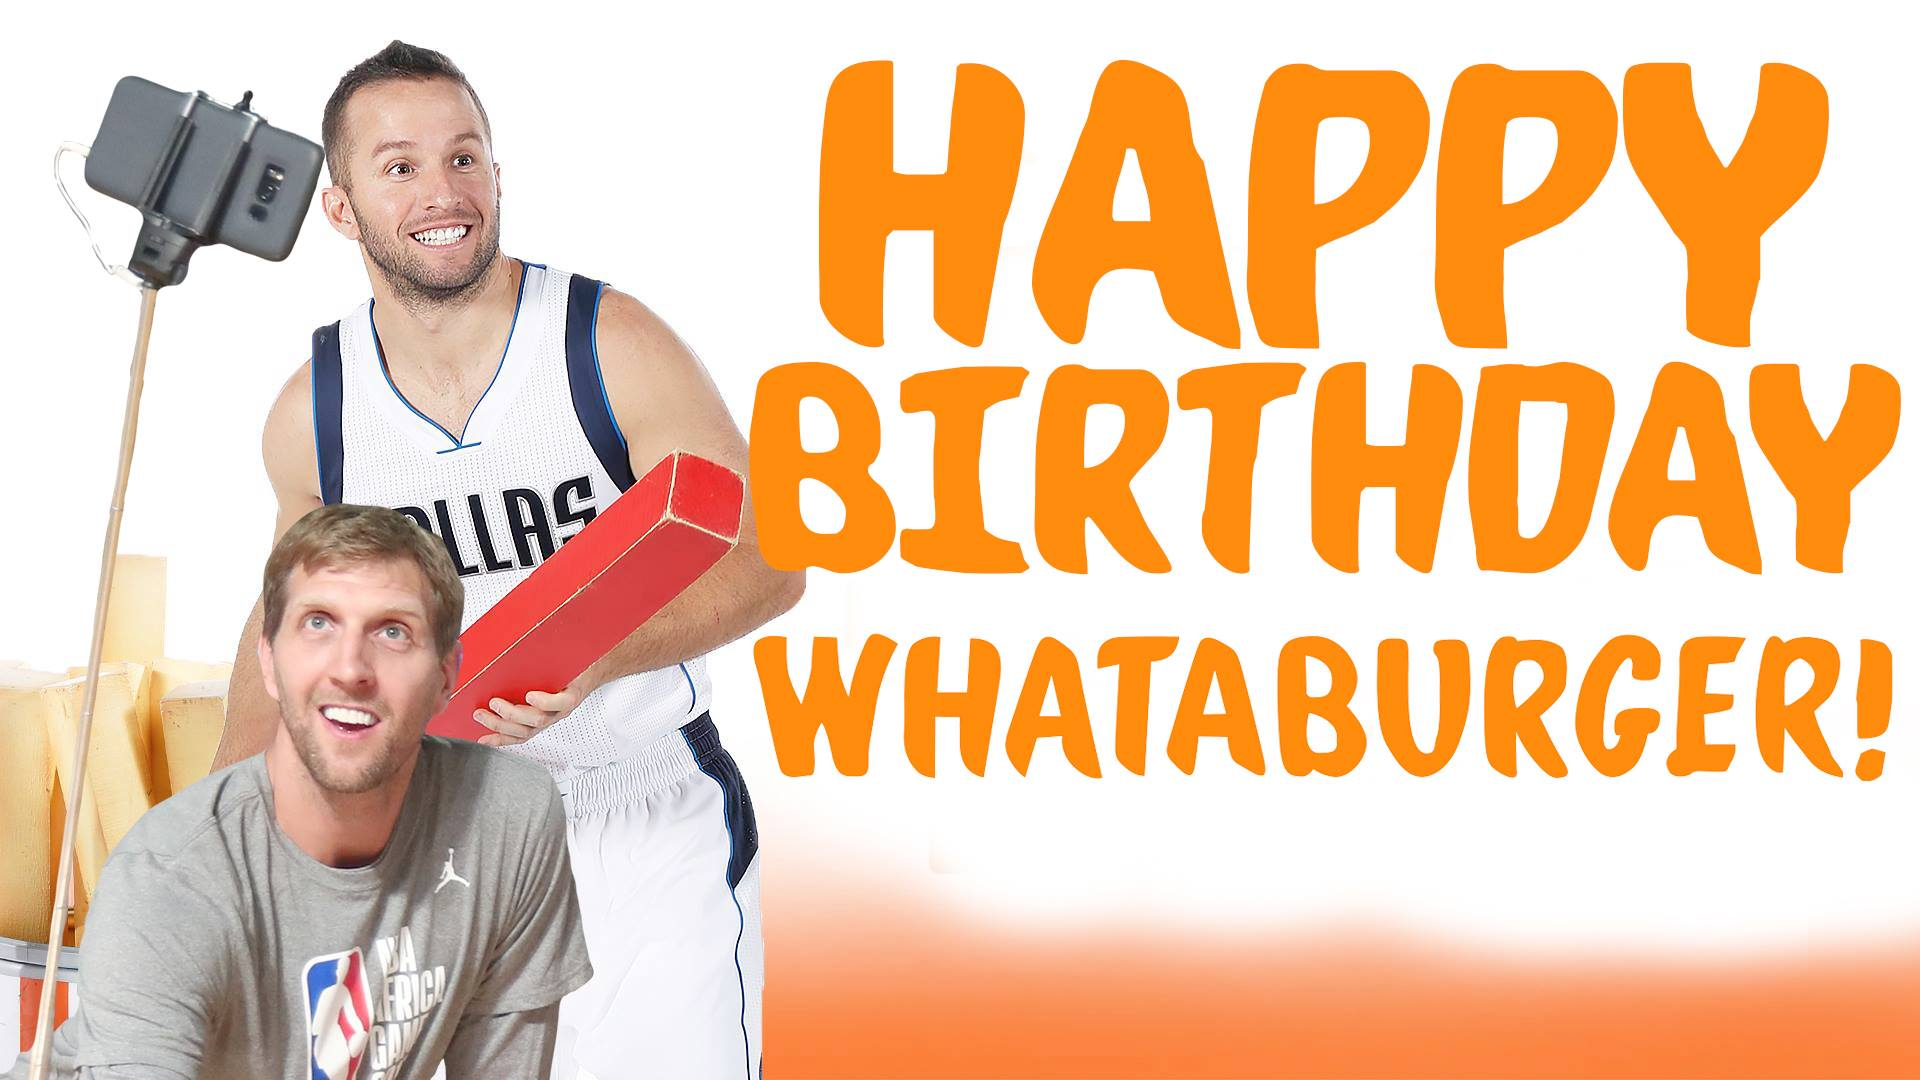 Happy Birthday to our friends at @Whataburger! ������ https://t.co/n7pJigXR82